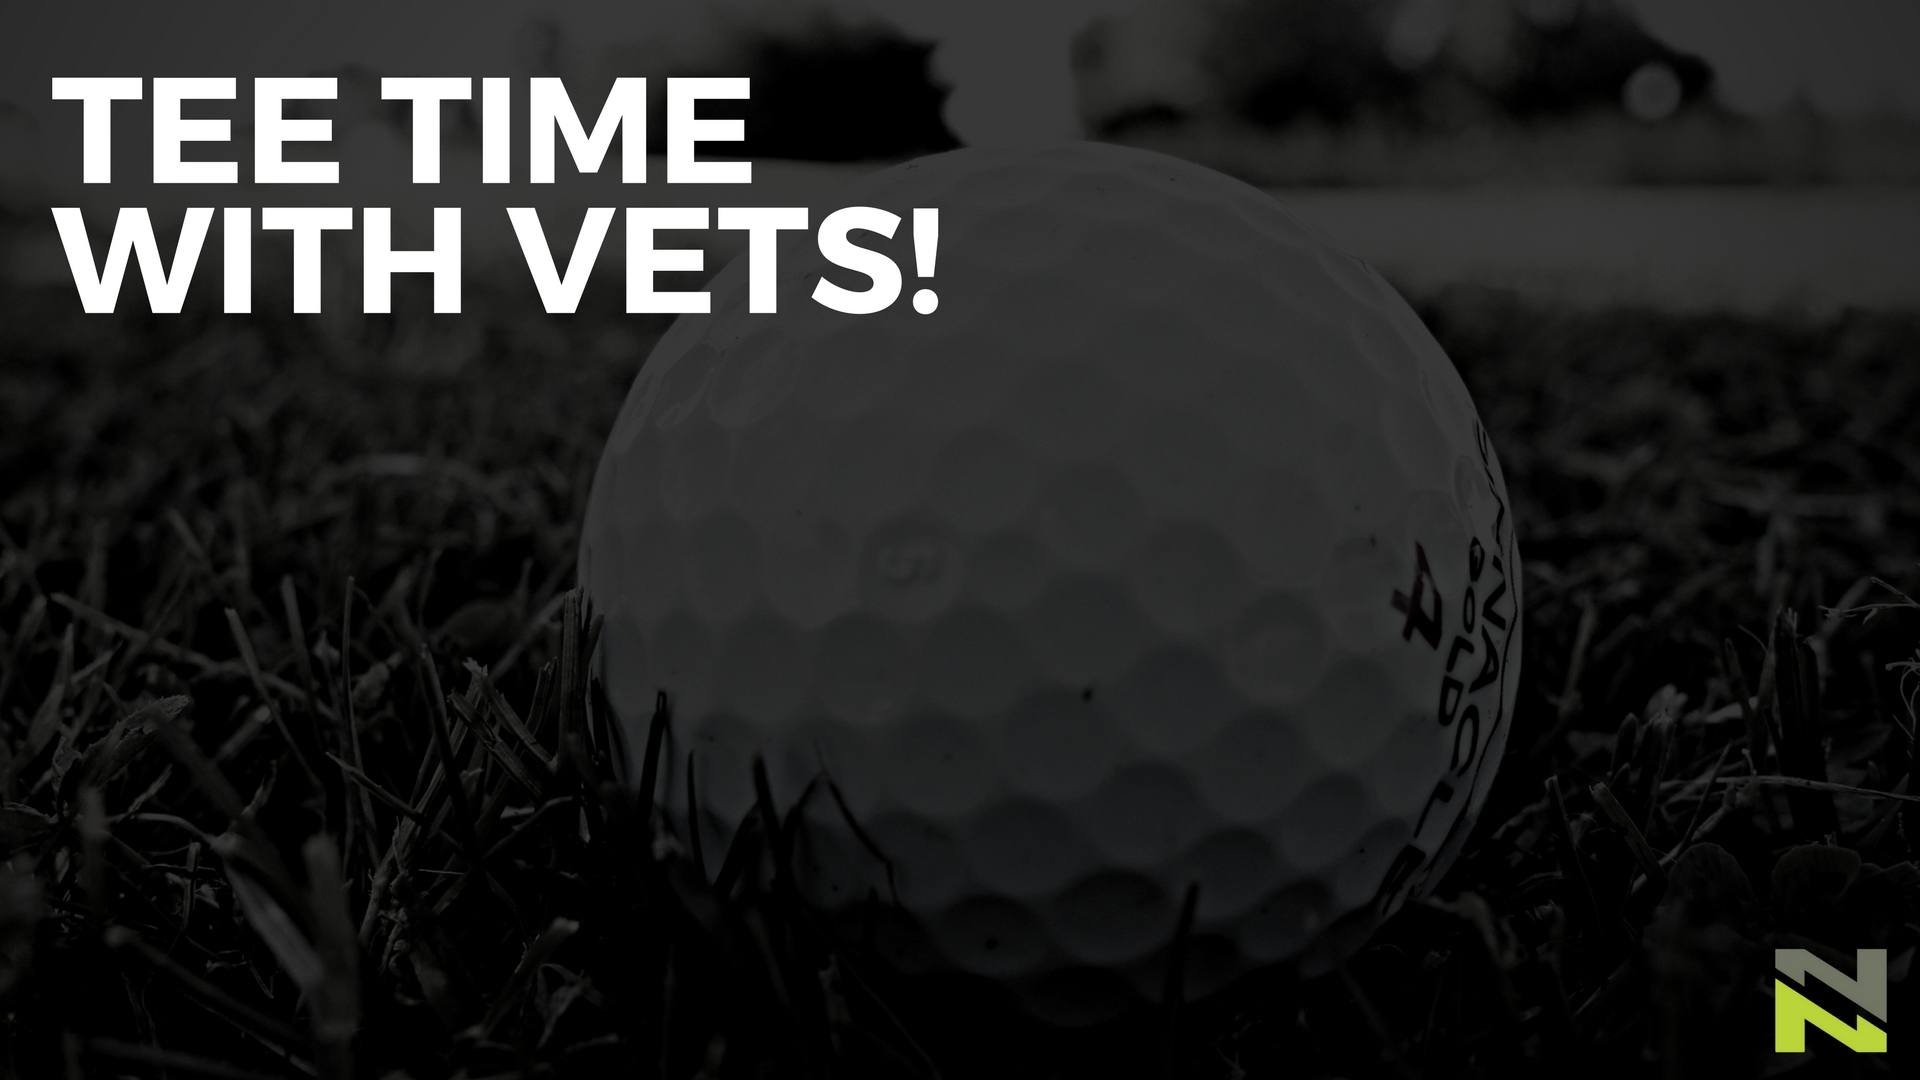 Paul has recently been participating in a golf program with veterans of the Wounded Warrior Project. Several times throughout the summer, ...